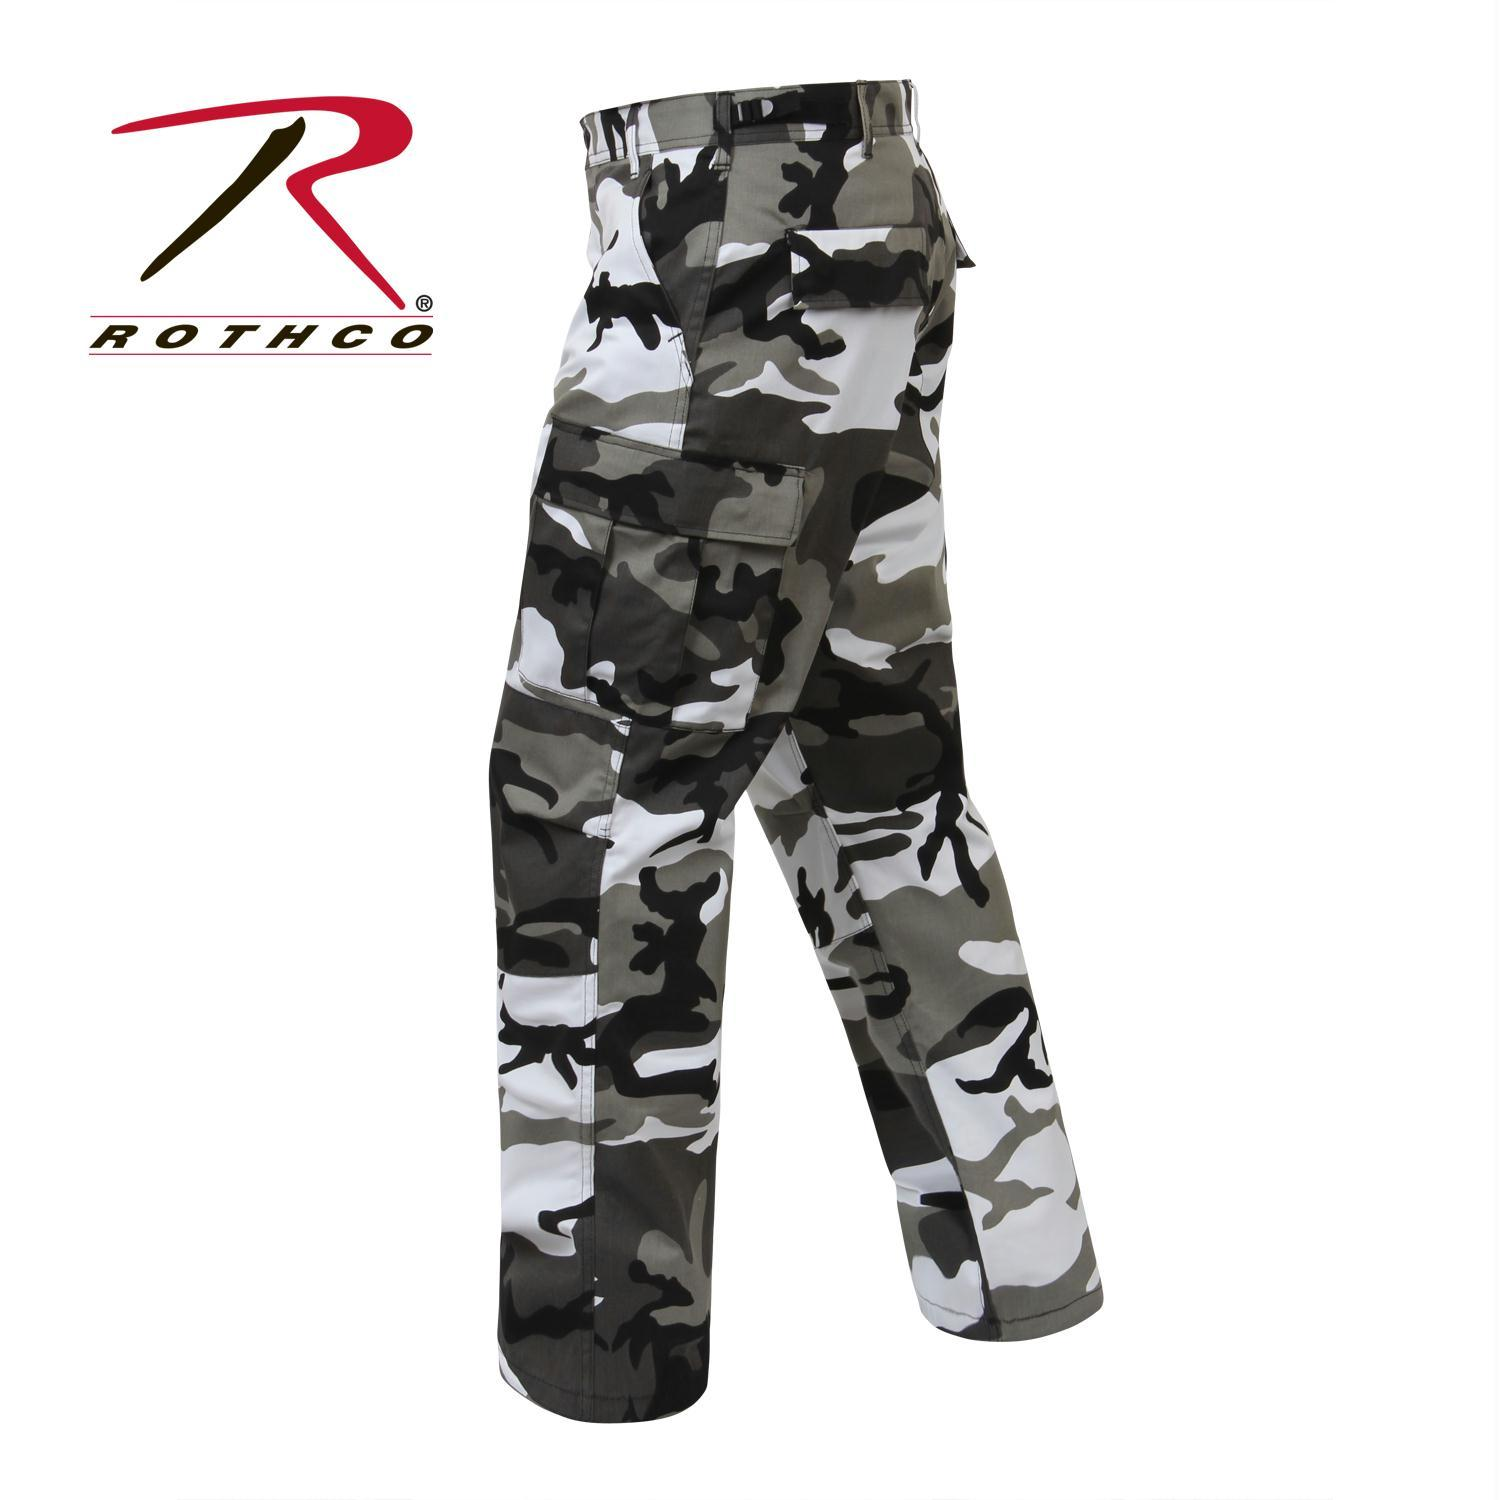 Rothco Color Camo Tactical BDU Pant